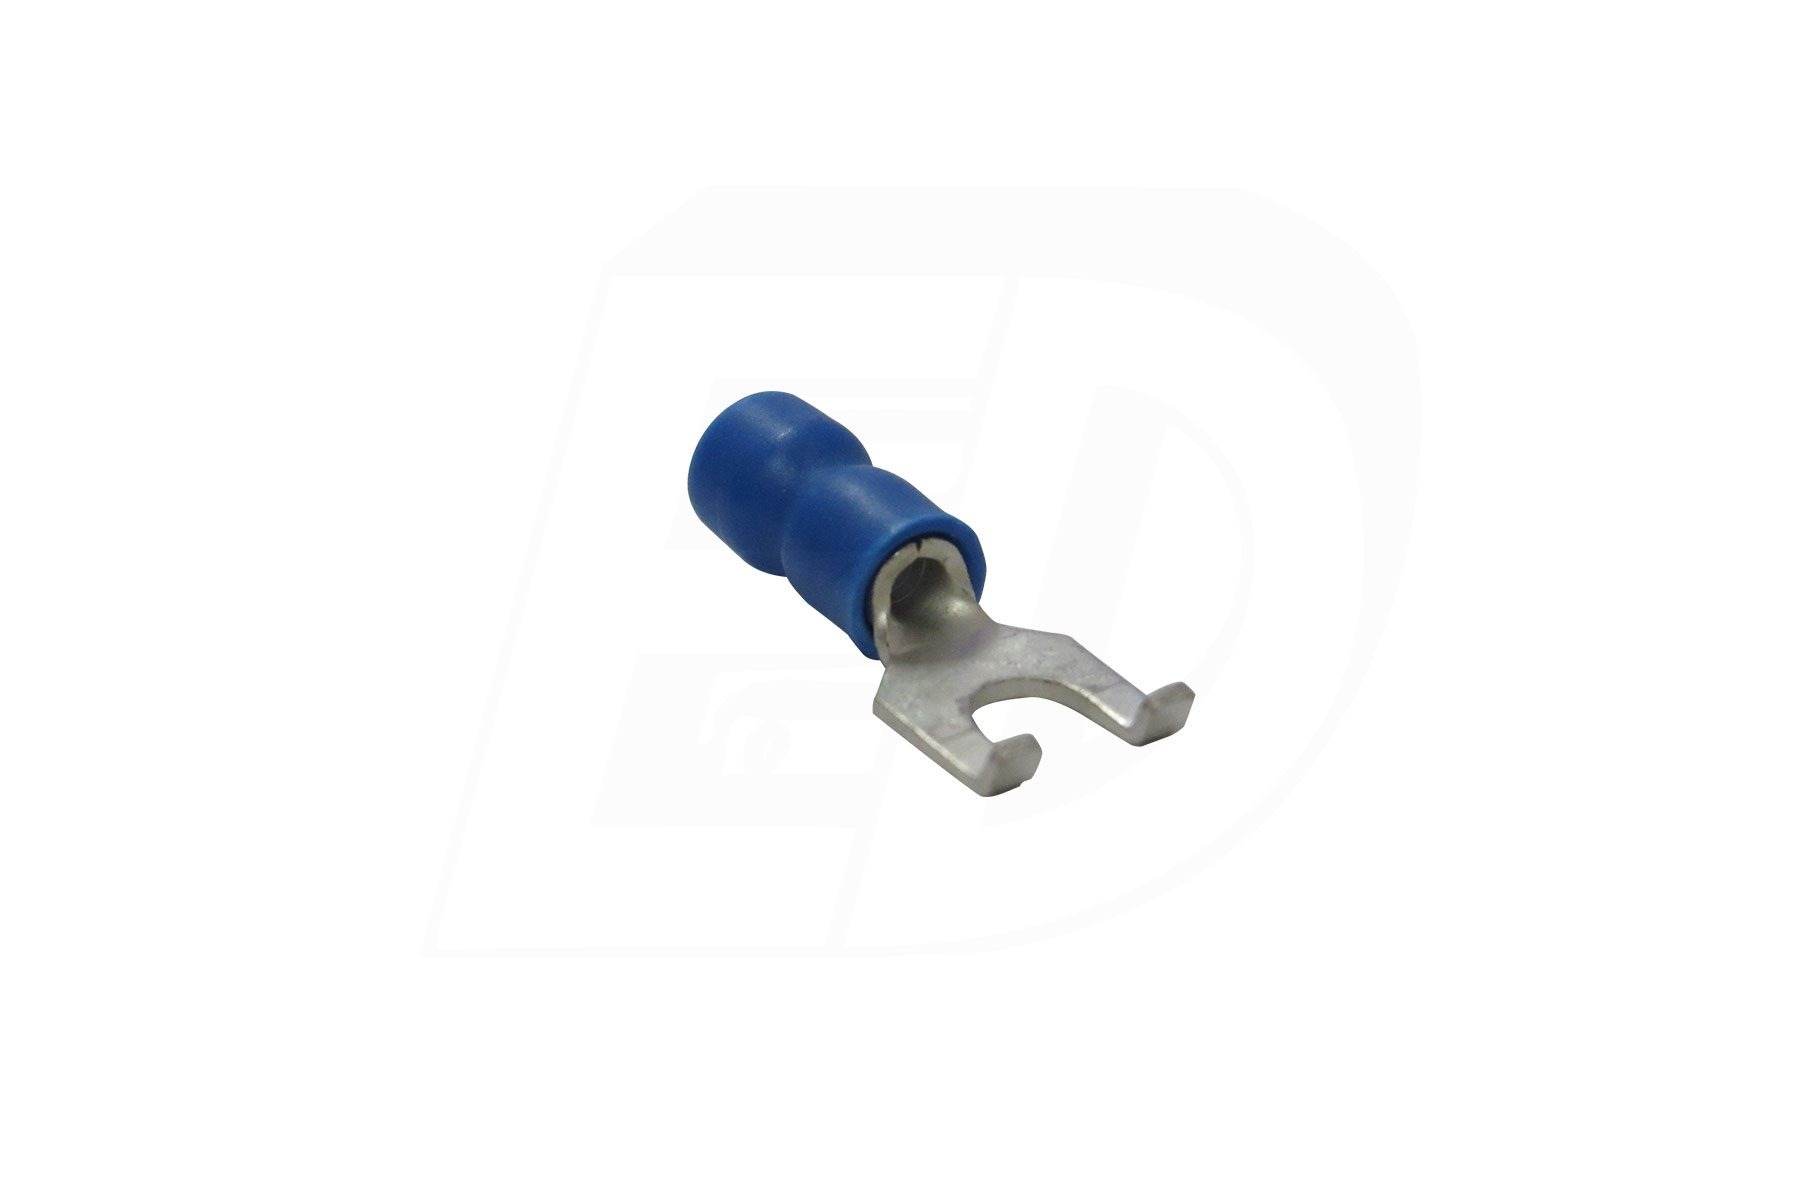 Vinyl Insulated Flanged Spade Terminal with Funnel Entry 16 -14 AWG #10